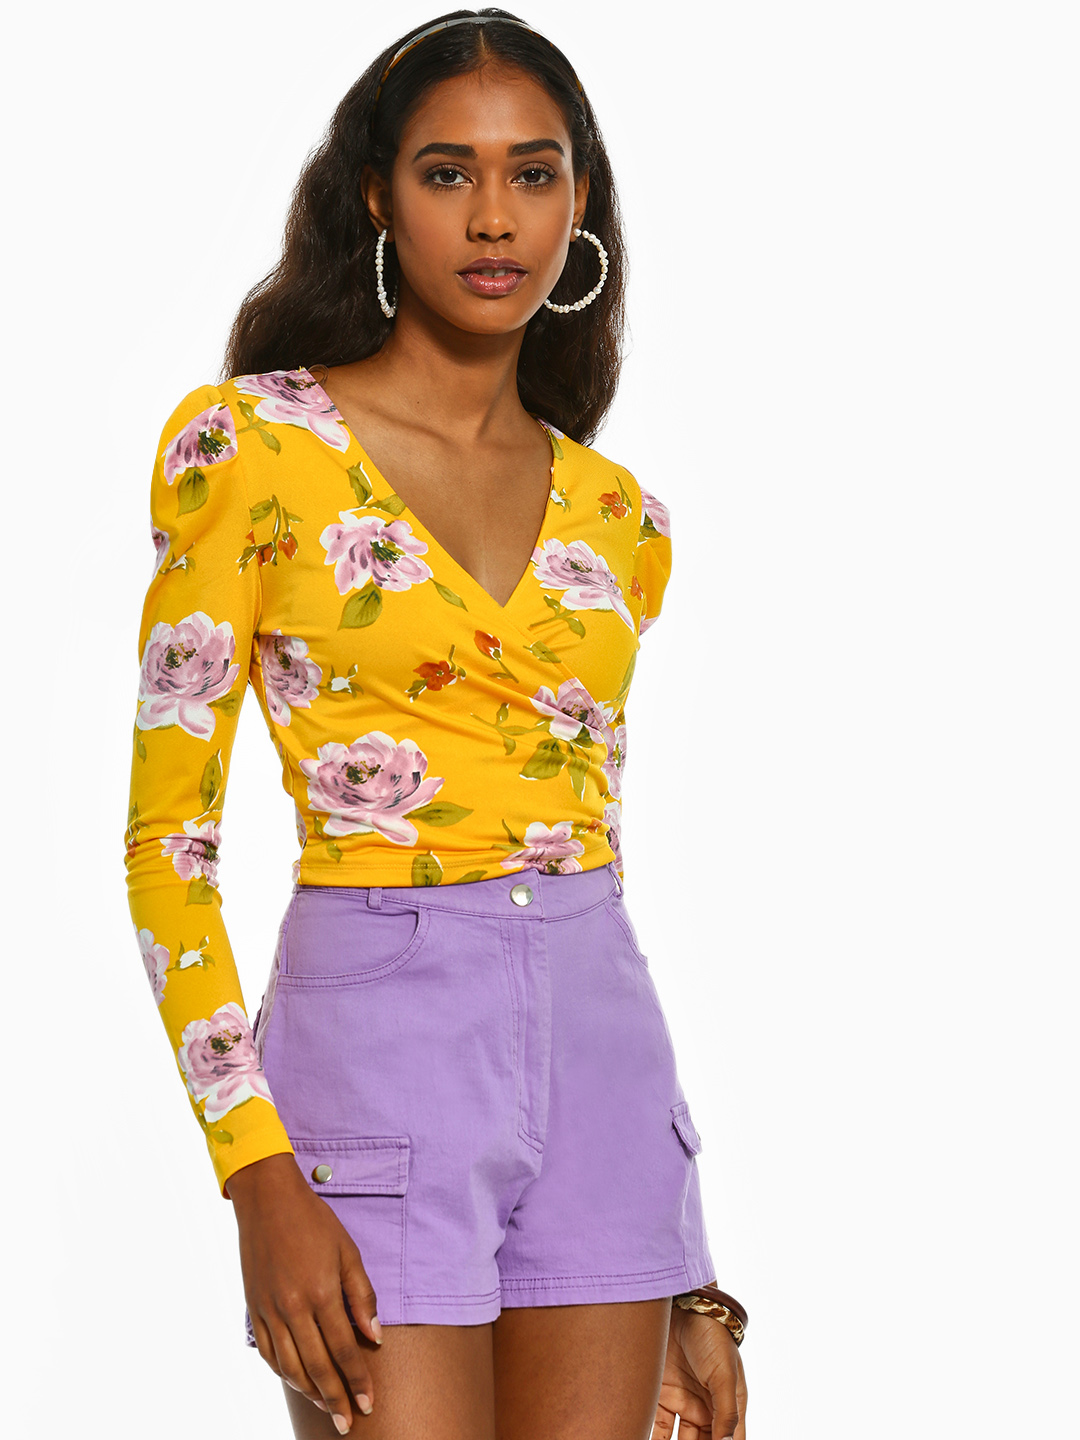 Iris Yellow Floral Print Crop Top 1